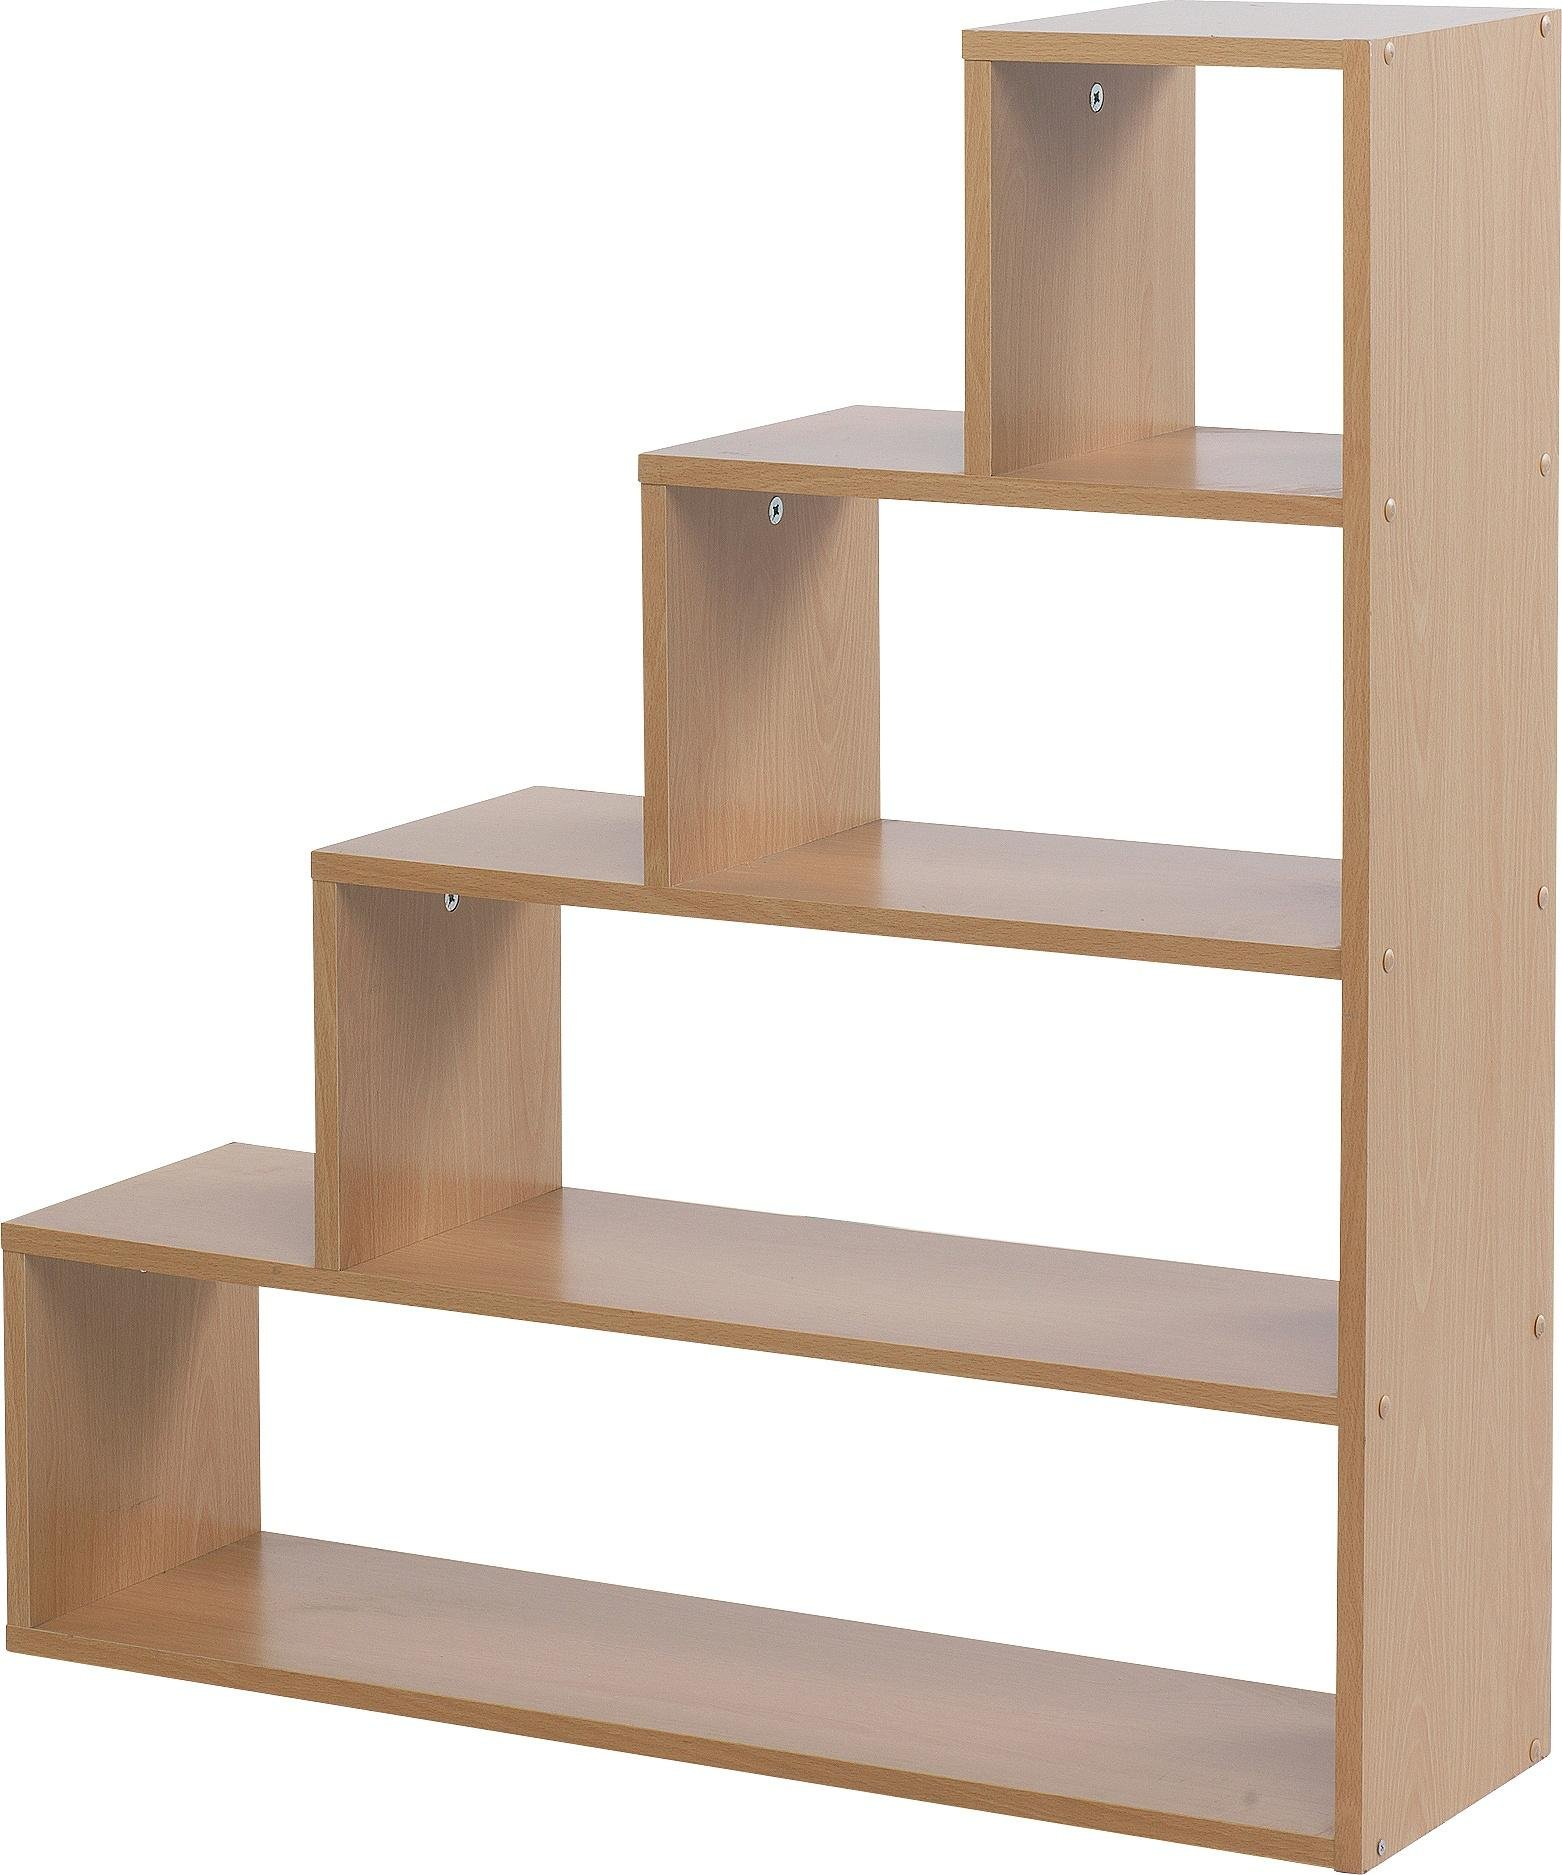 Under Stairs Shelving Unit buy home understairs shoe storage unit - beech effect at argos.co